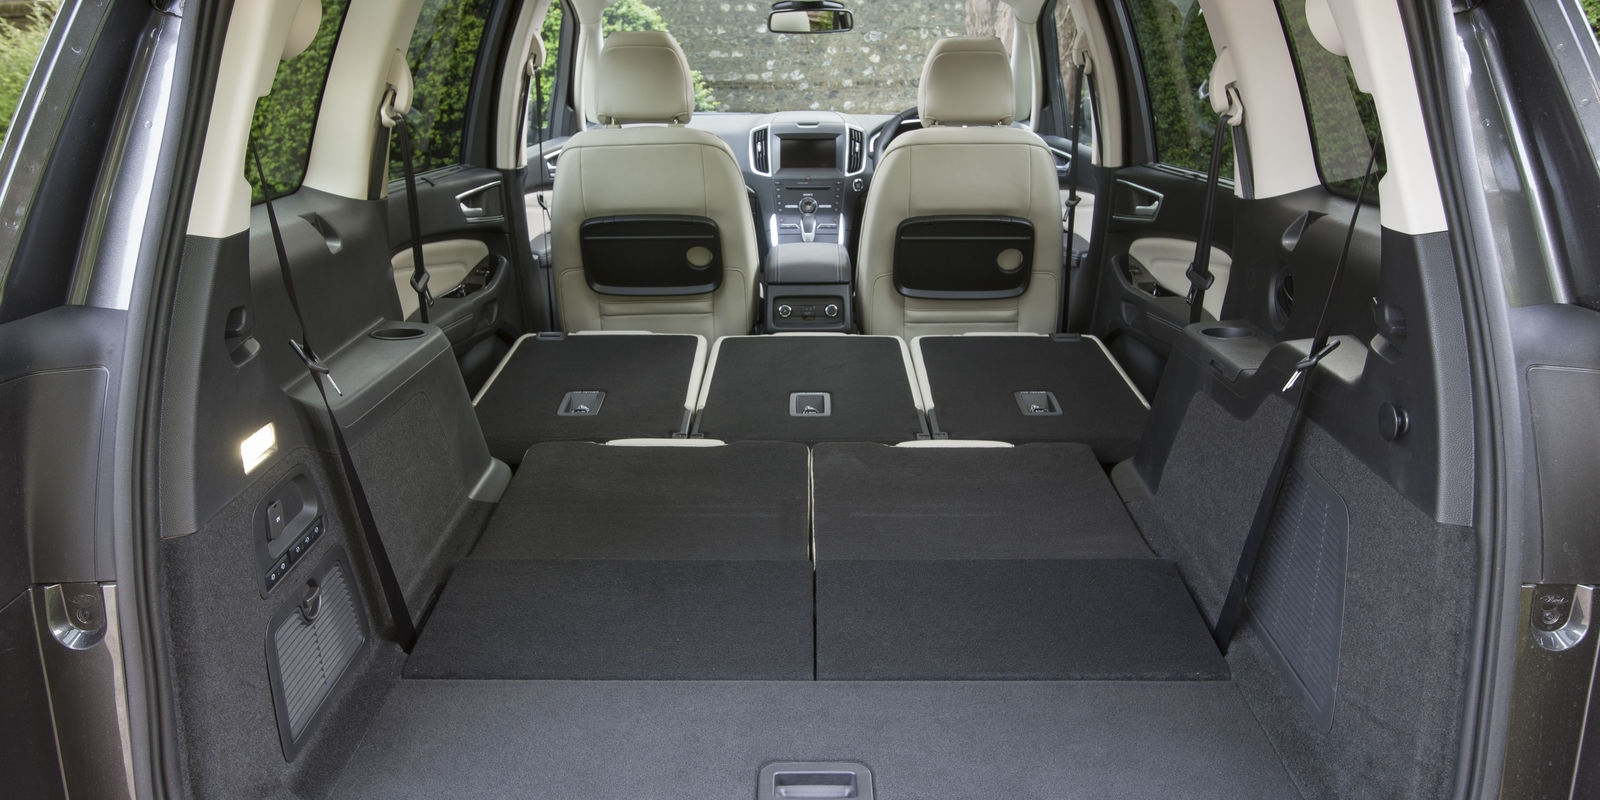 Ford Galaxy Review Amp Deals Carwow